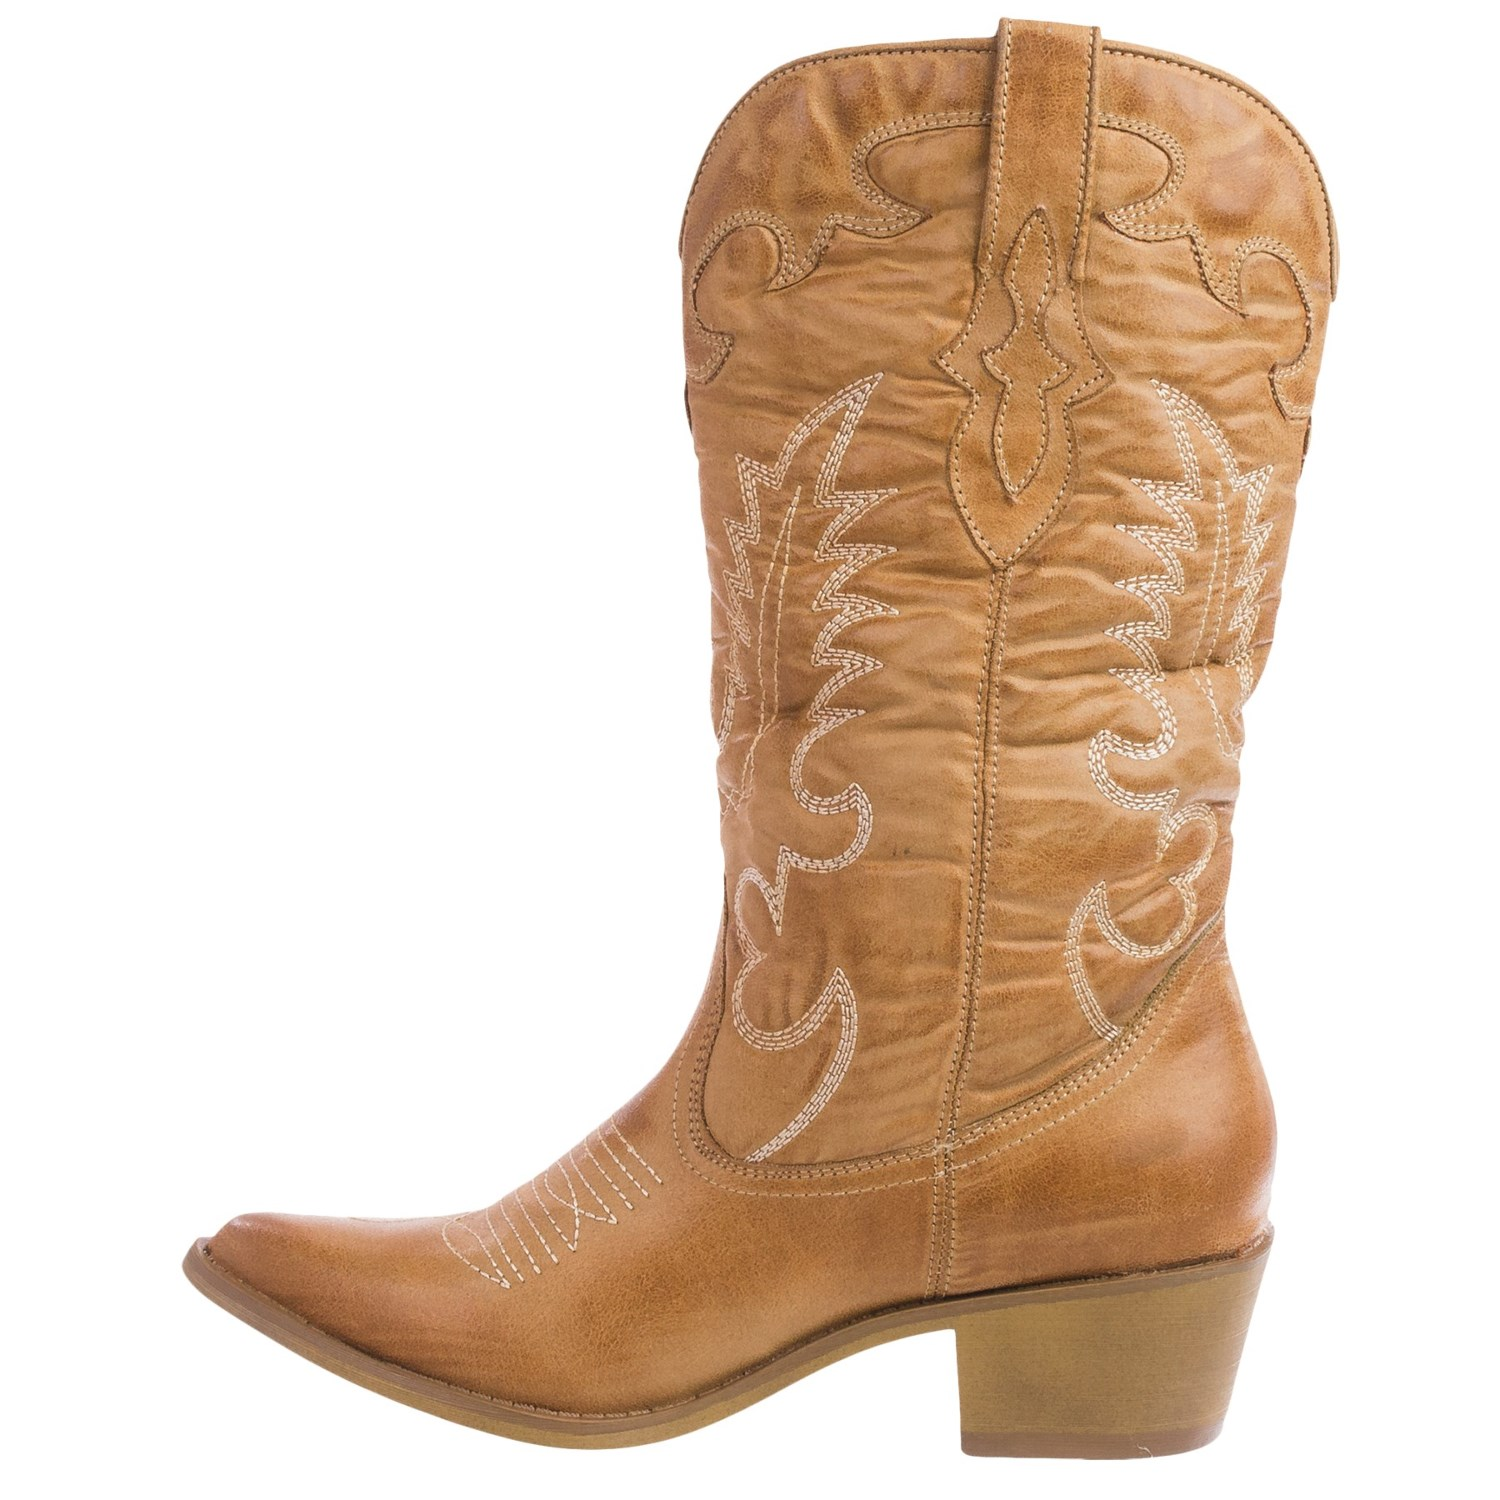 Matisse Desperado Cowboy Boots (For Women) - Save 50%